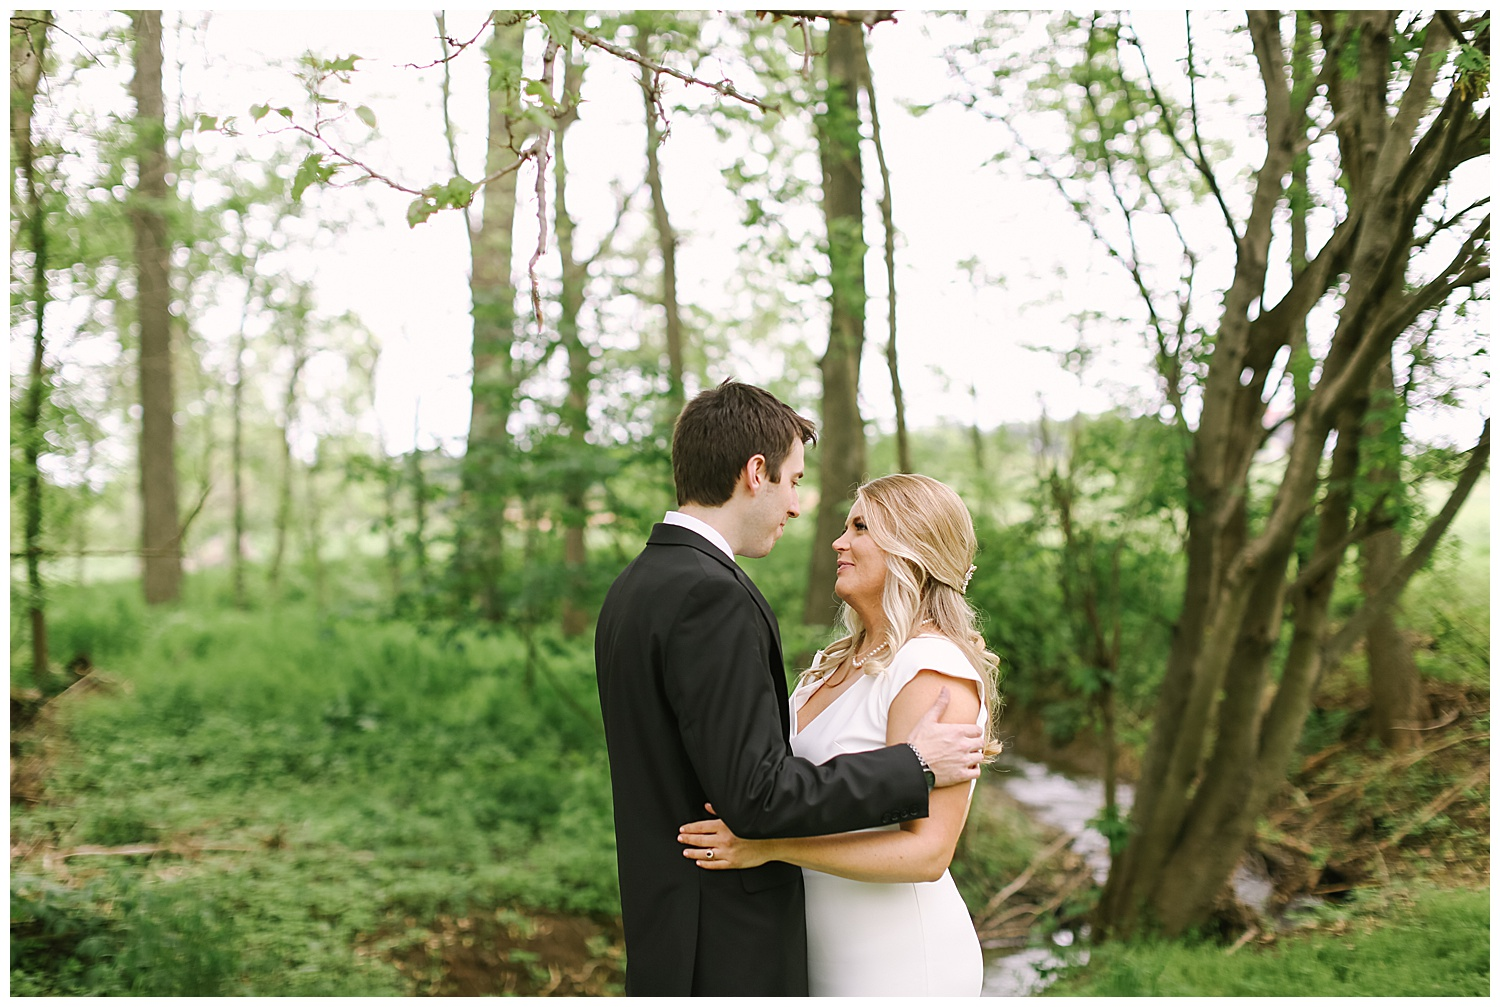 trent.and.kendra.photography.elopement.intimate.wedding-55.jpg